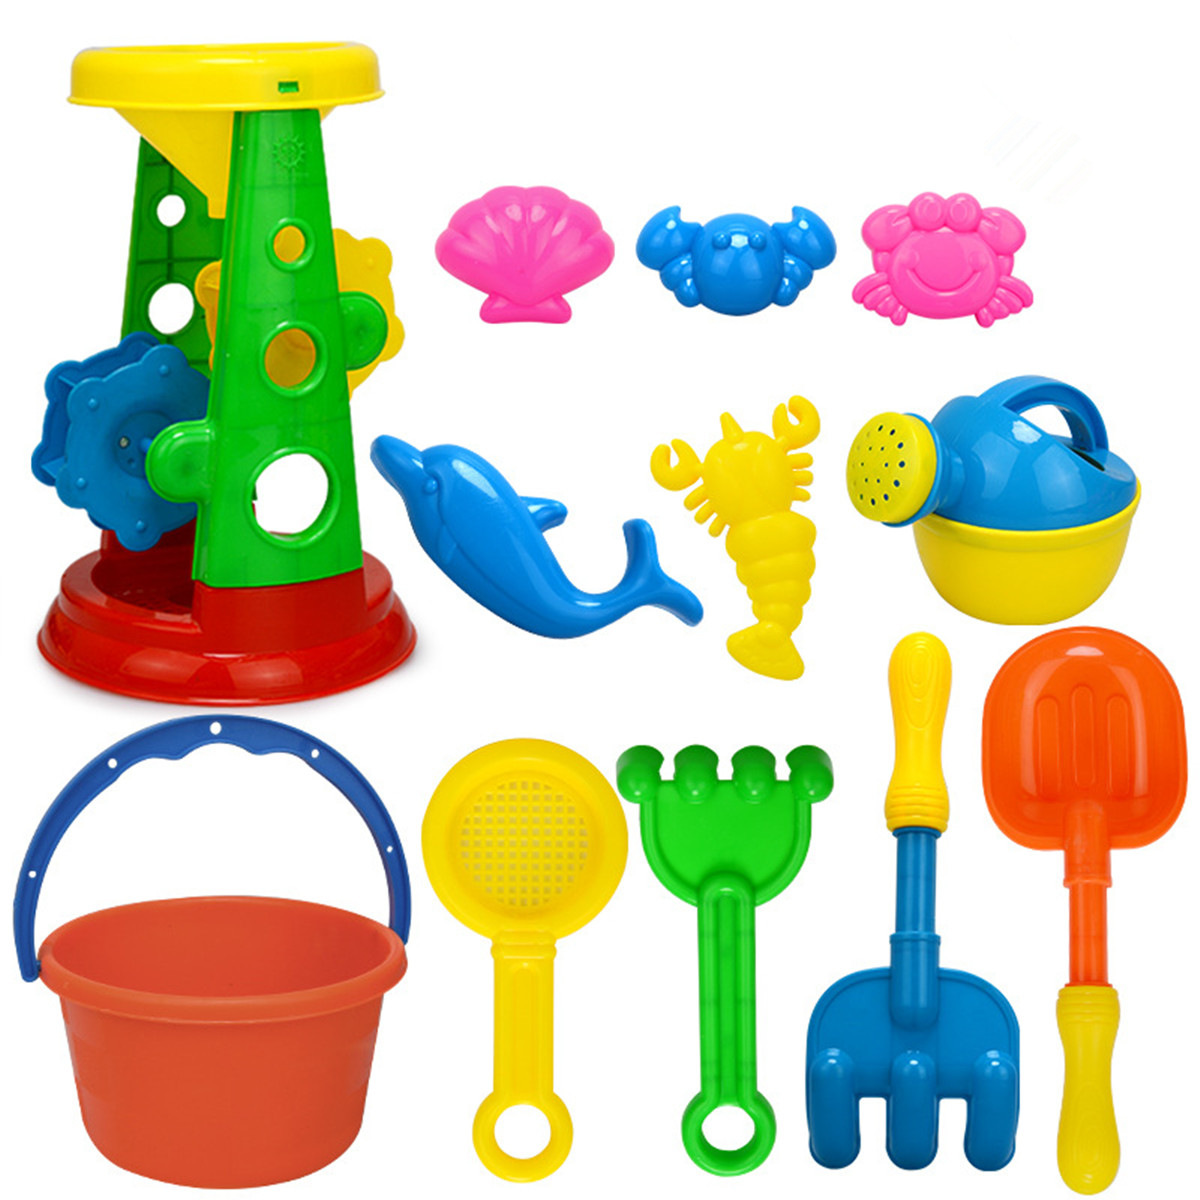 Bad Set For Baby 12pcs Set Summer Beach Sand Play Toys Sand Water Toys Kids Seaside Bucket Shovel Rake Kit Play Toys